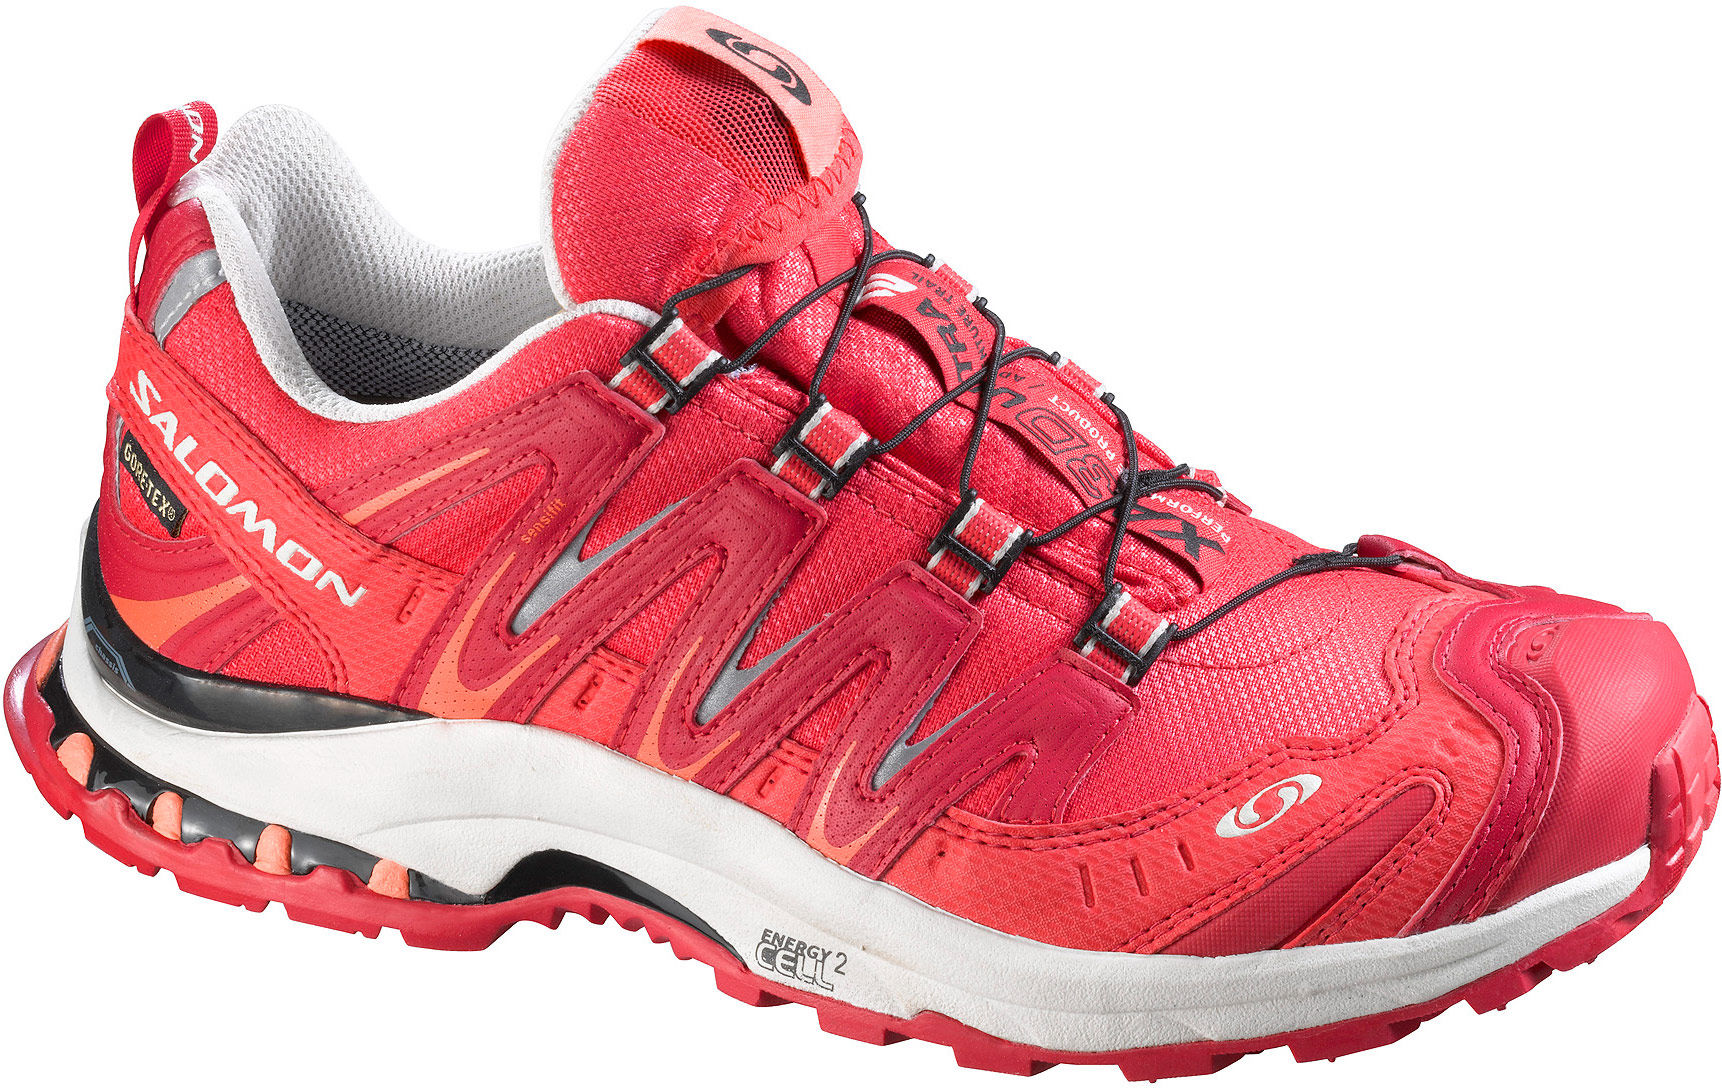 Salomon Sense Pro Ladies Trail Running Shoes